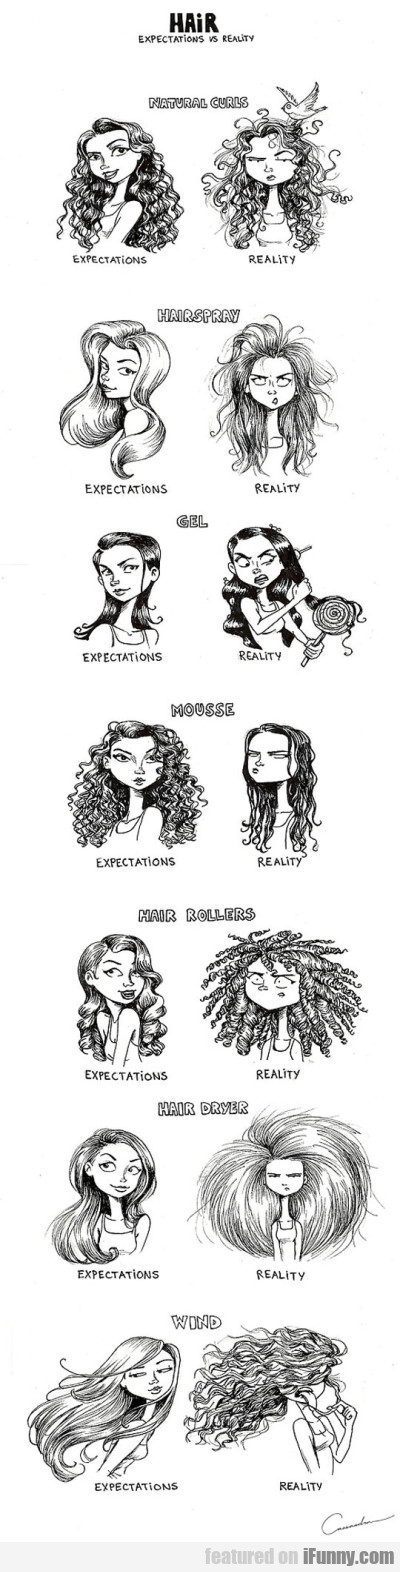 Hair - Expectations Vs Reality